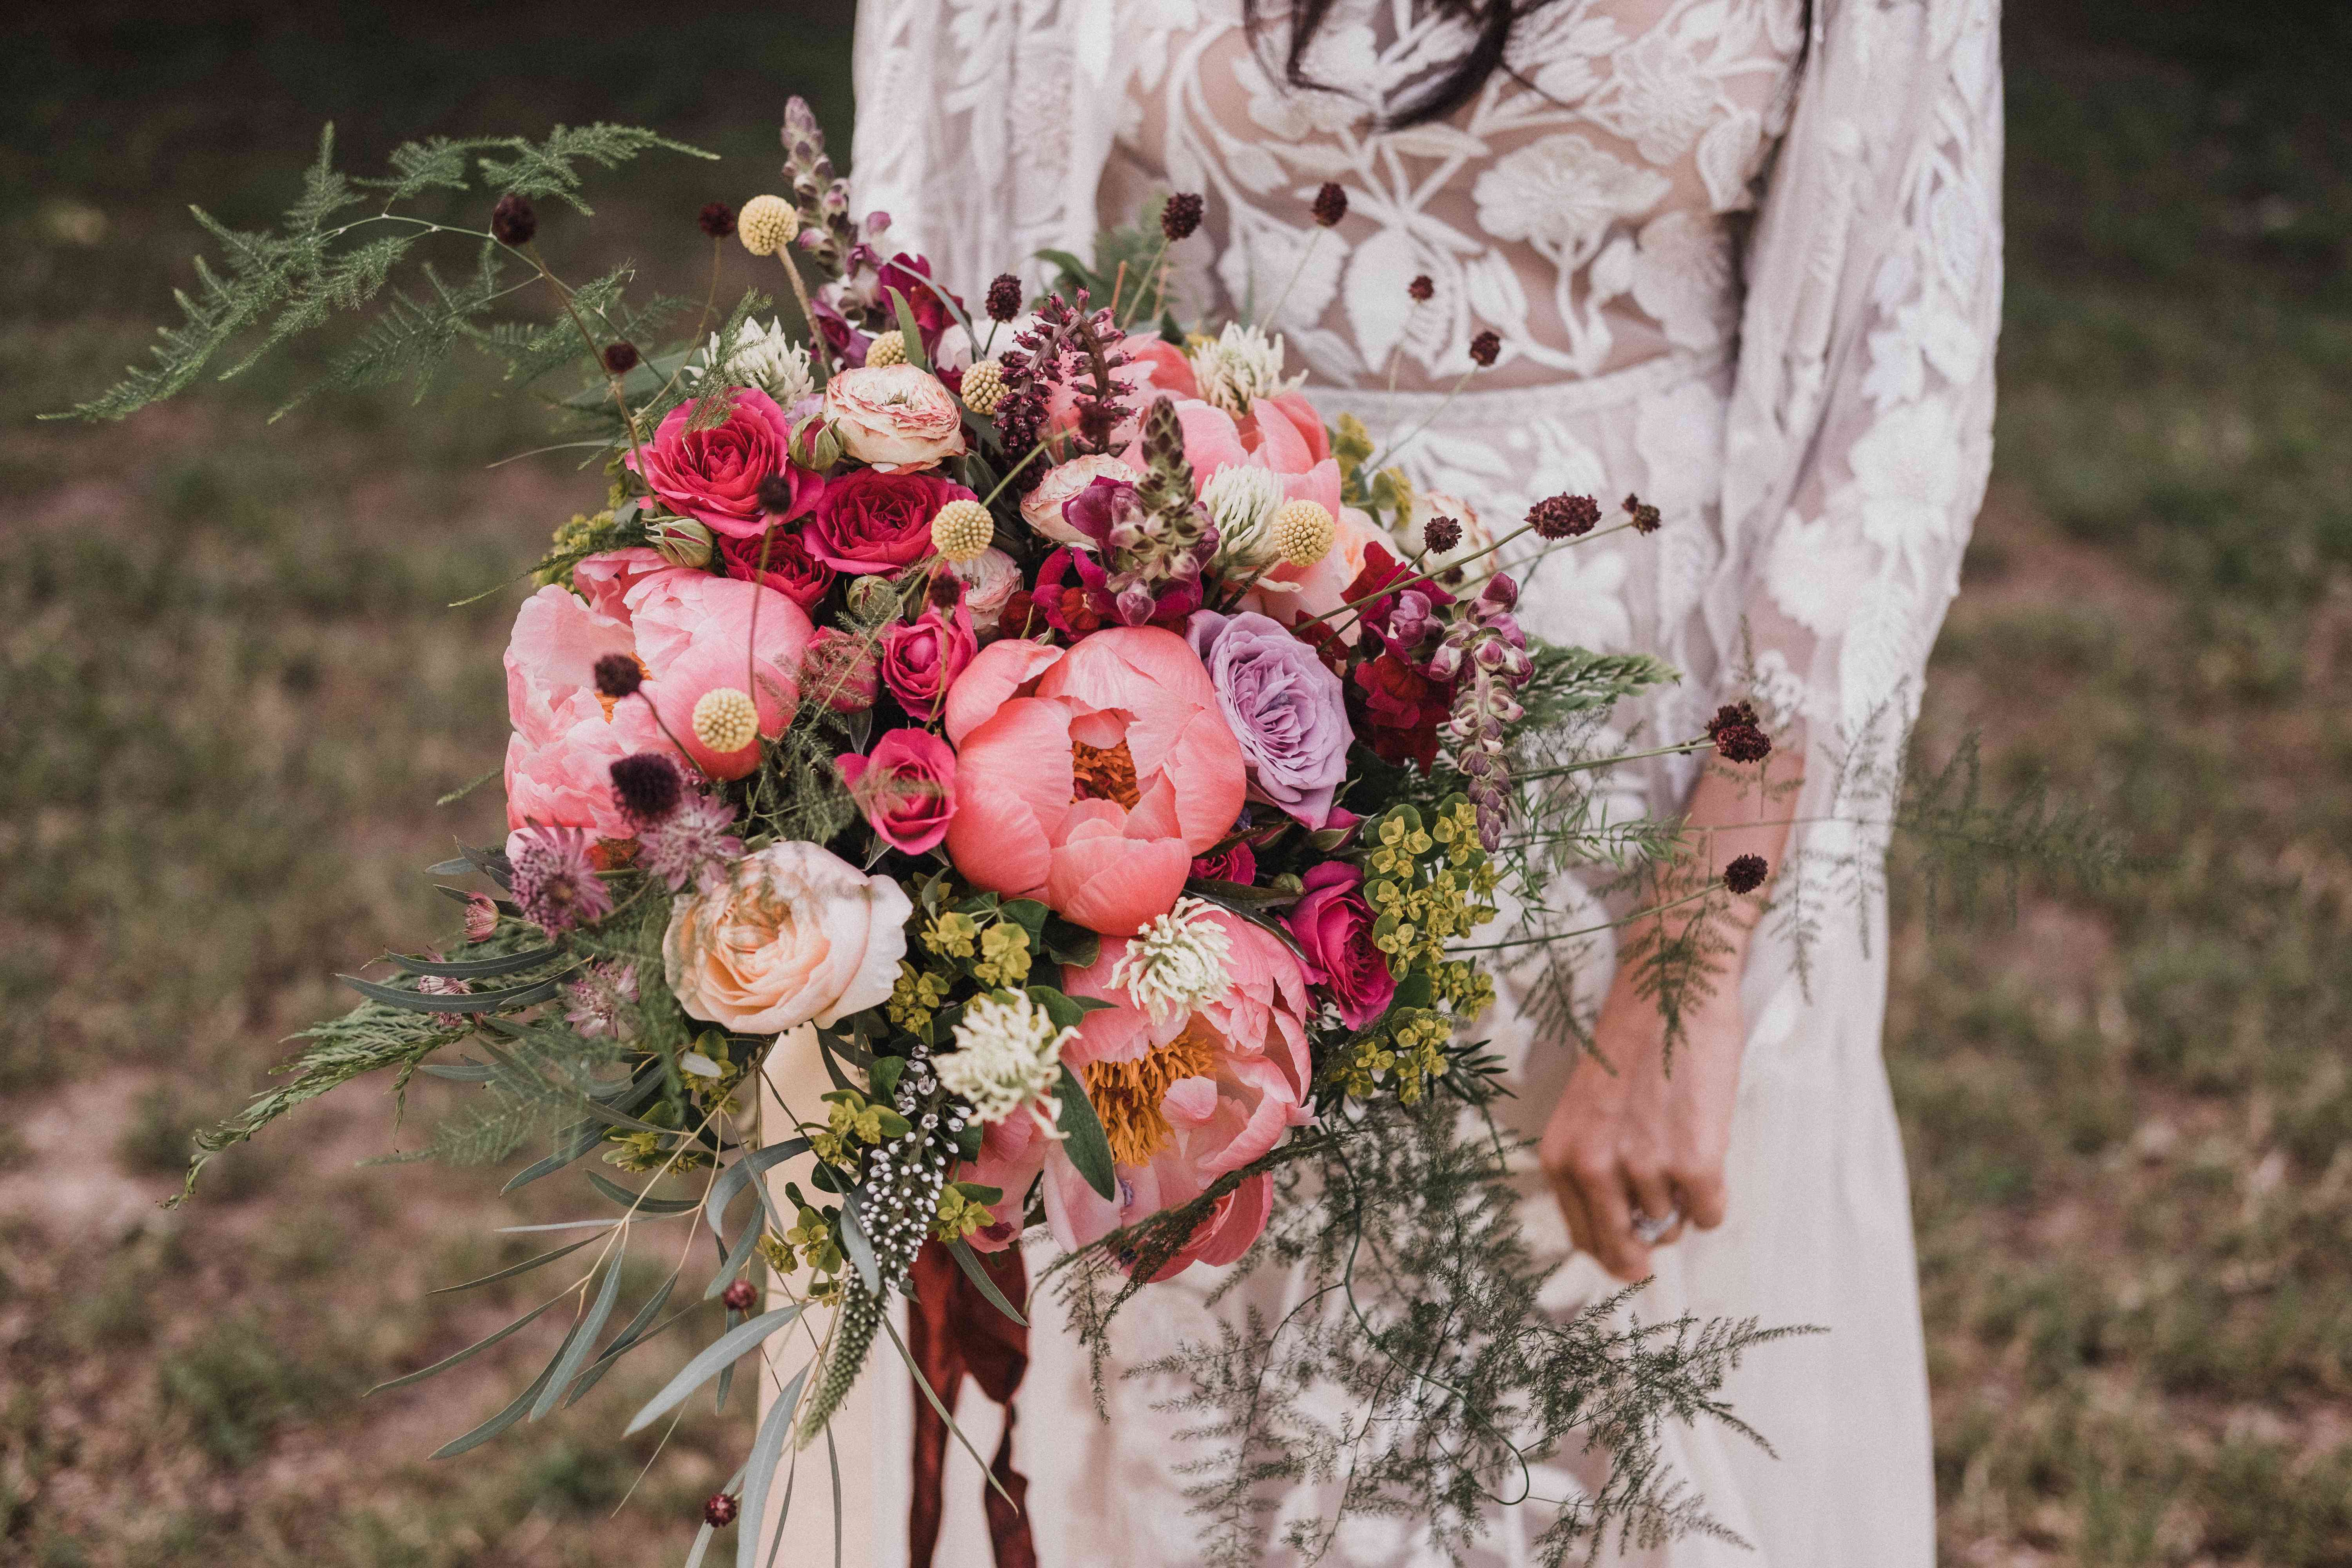 Bohemian Peony bouquet with ferns